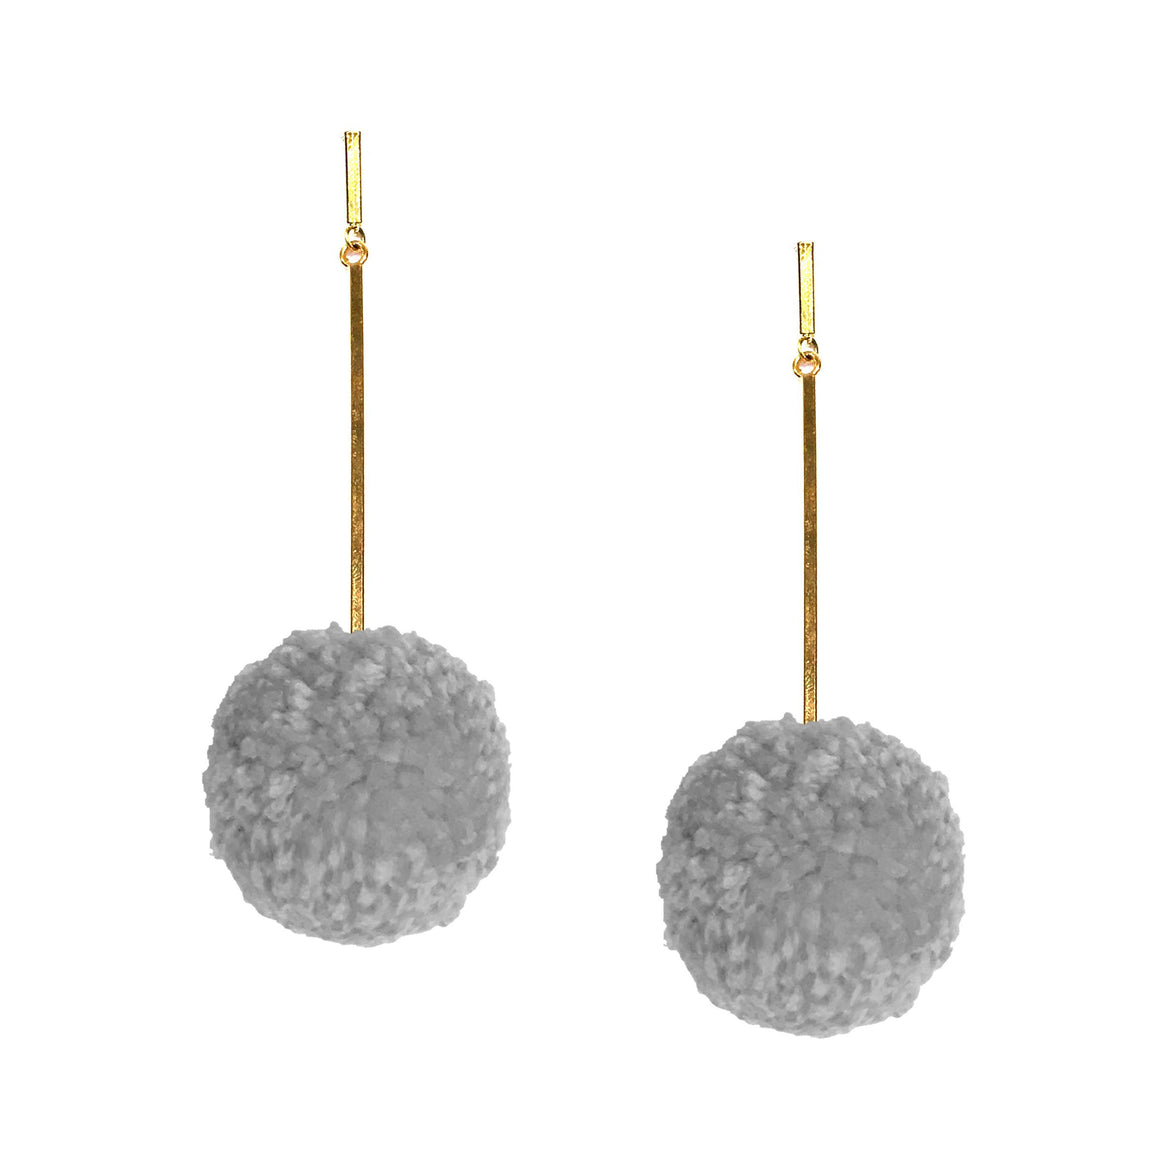 "Grey Mist 2"" Yarn Pom Pom Earrings, earring, Tuleste, Tuleste"